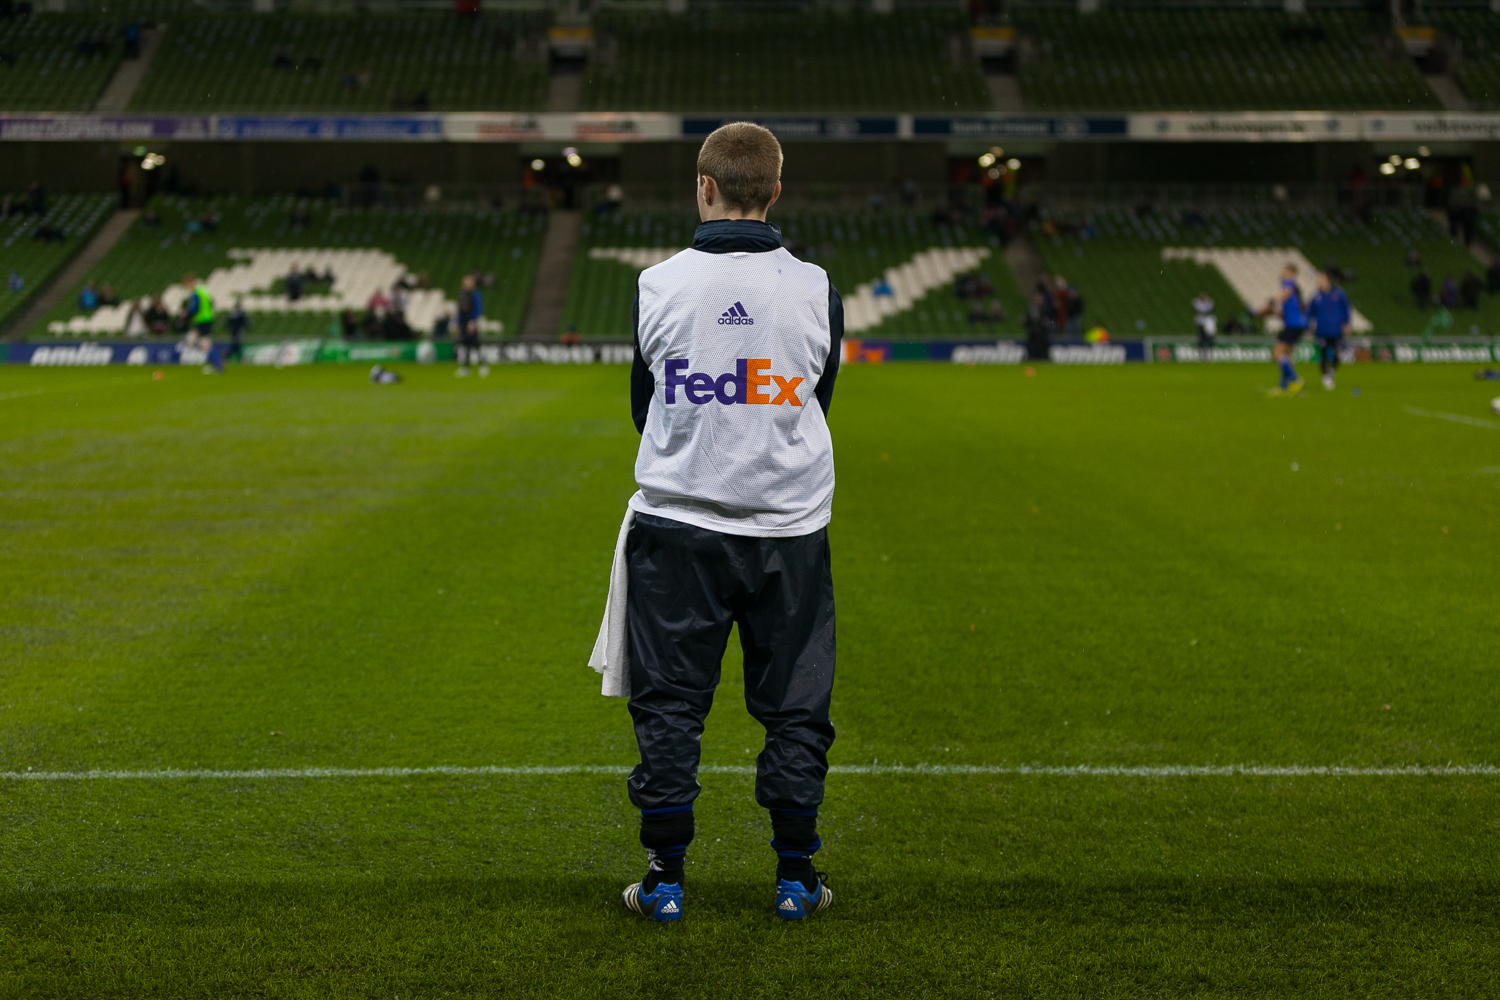 Leinster_vs_NorthamptonSaints-14